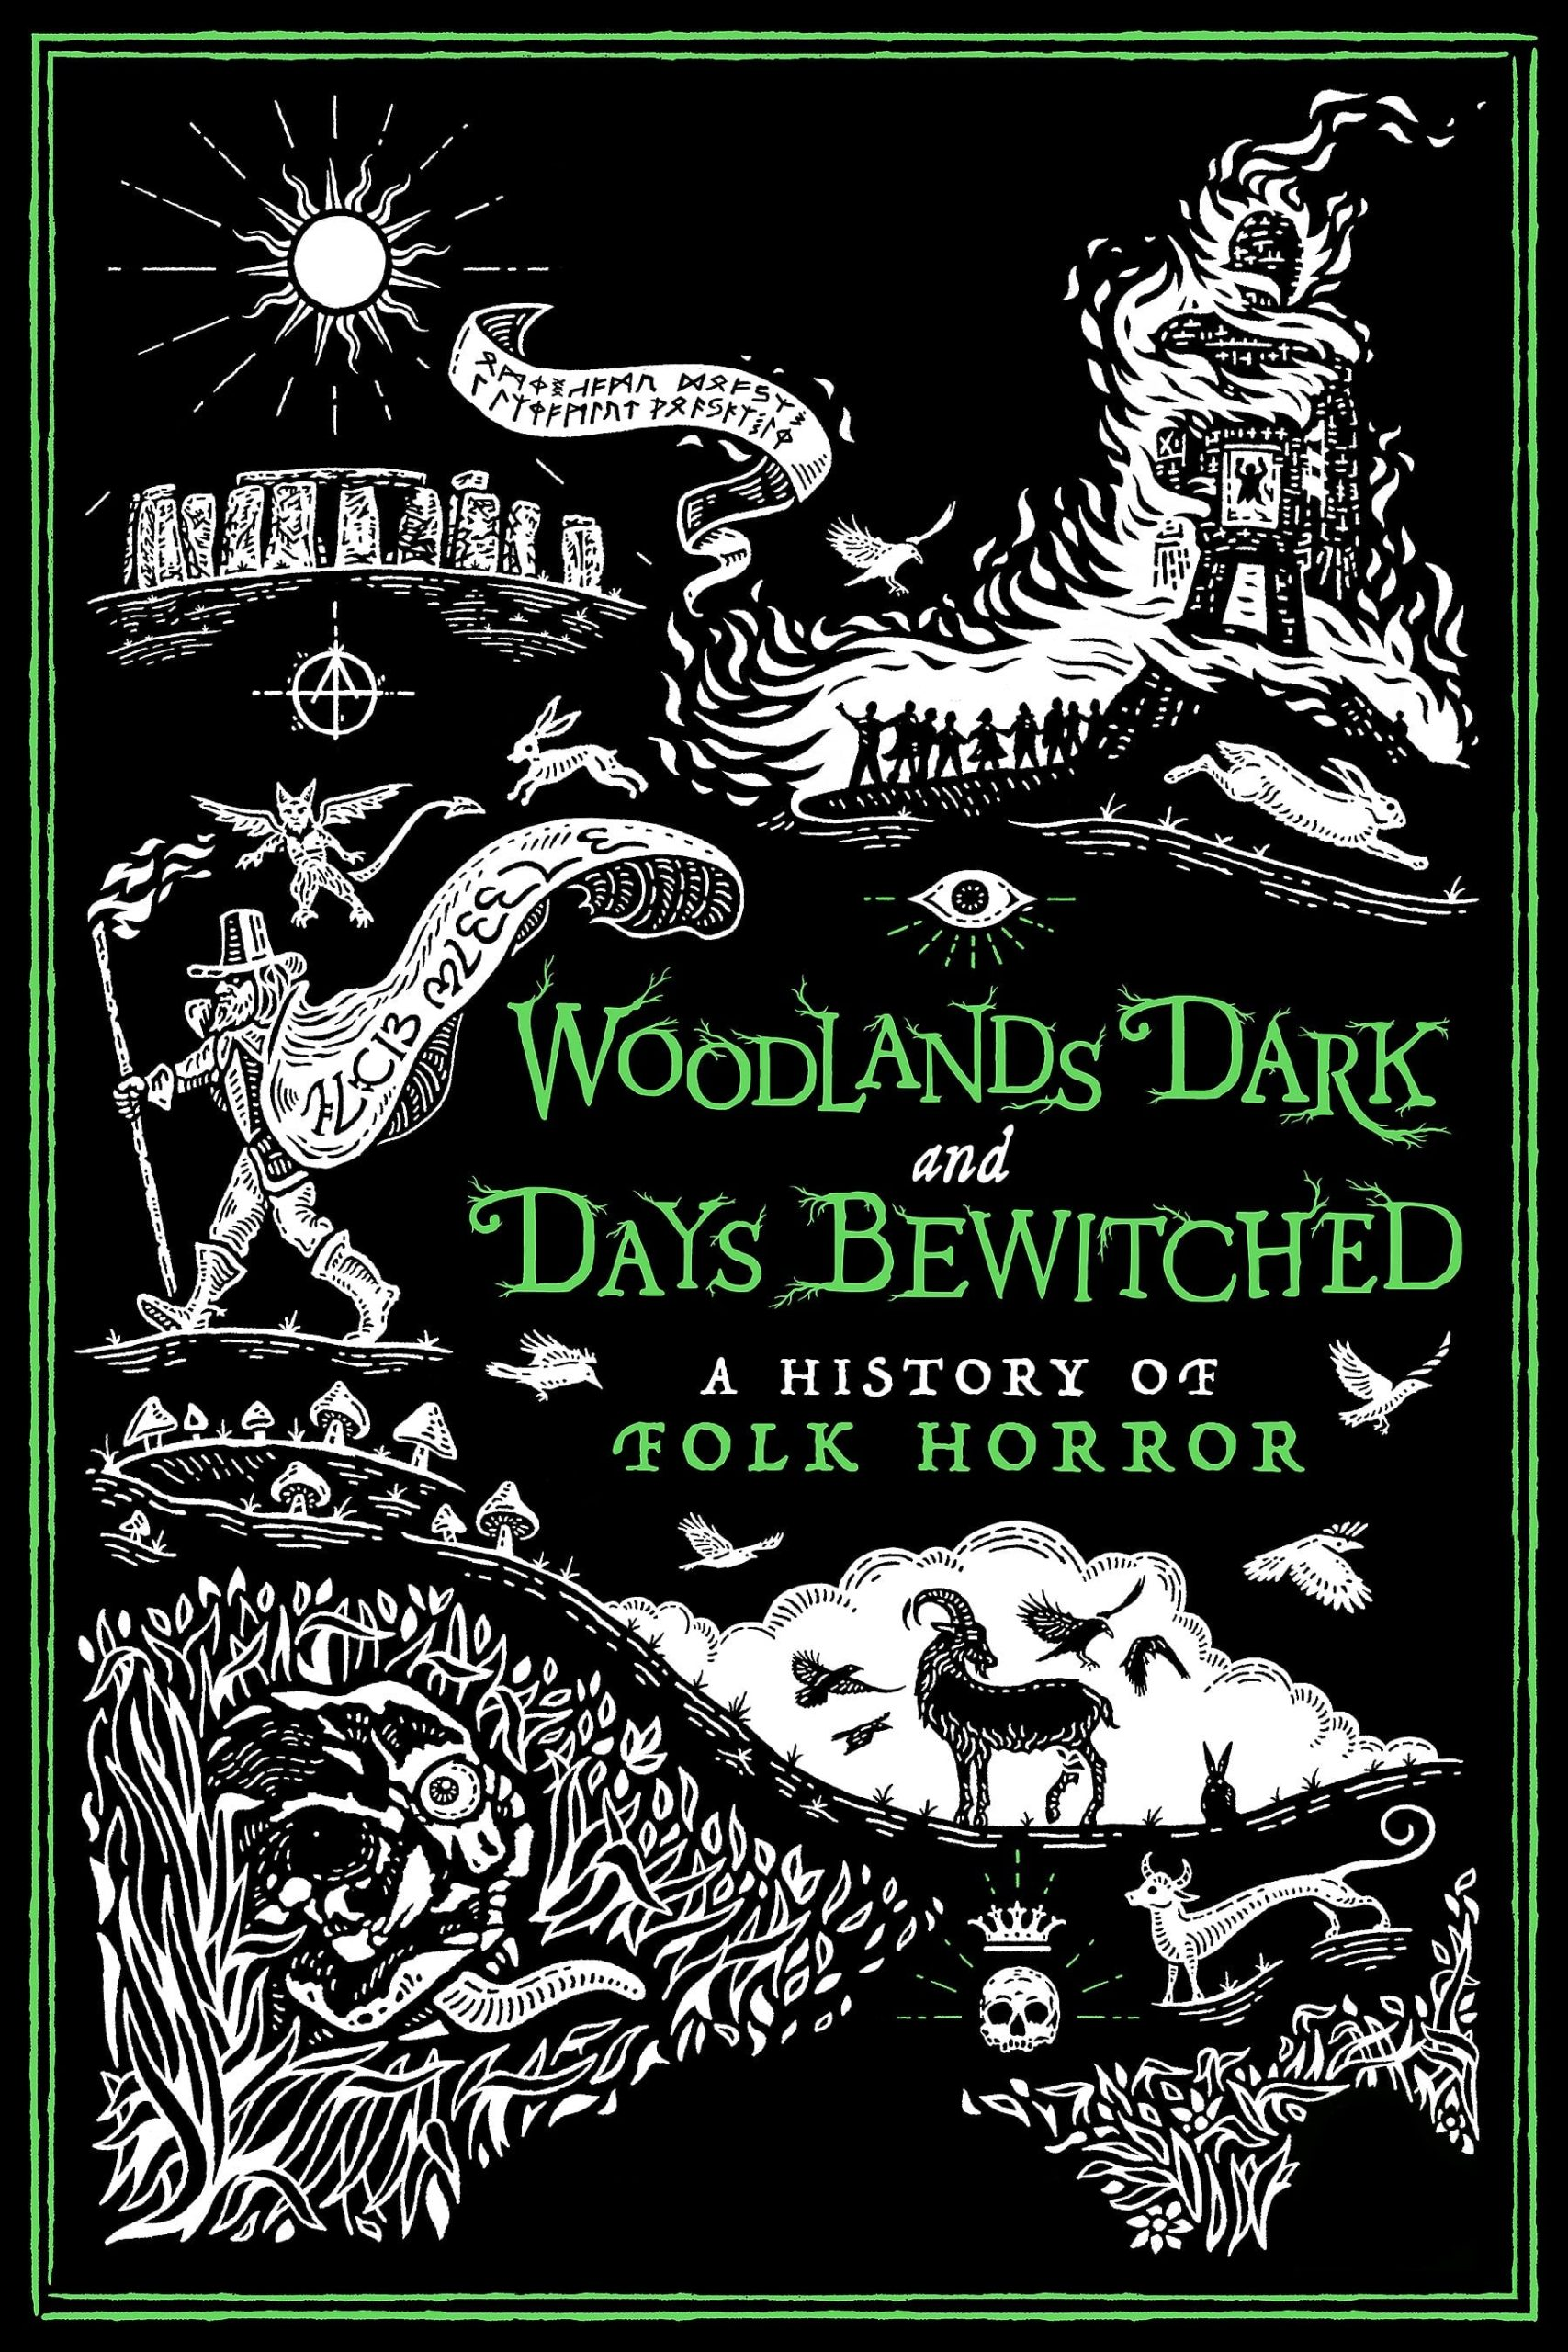 Poster for Woodlands Dark and Days Bewitched: A History of Folk Horror